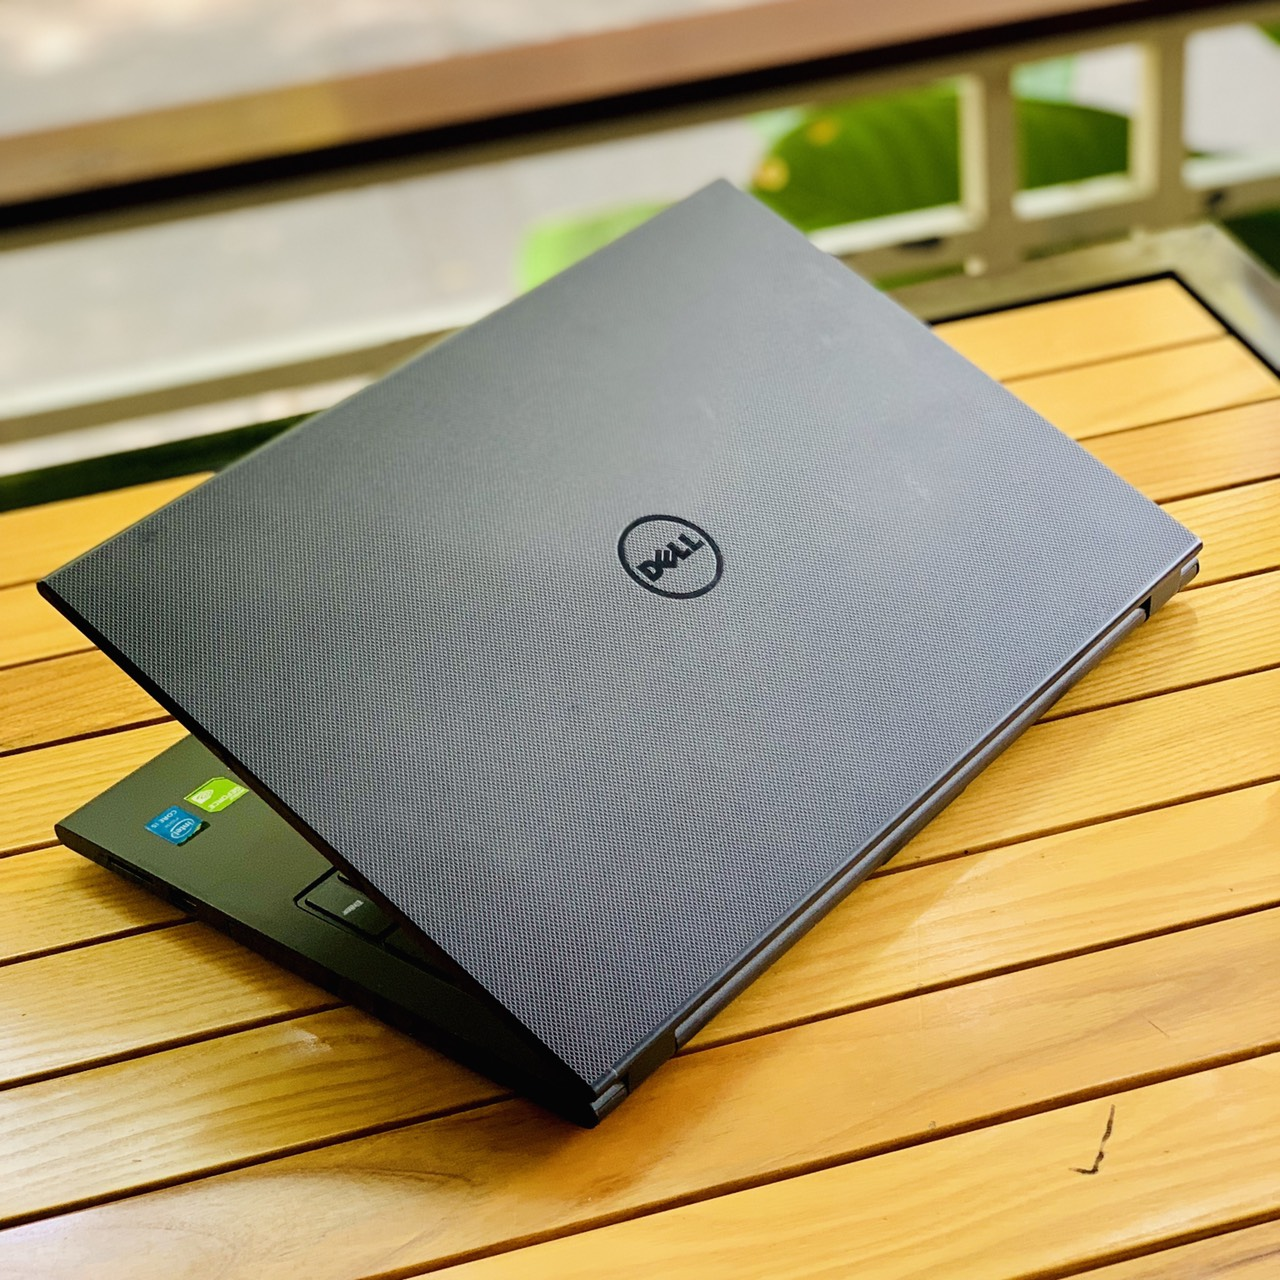 Laptop Dell Inspiron 3542 i5 4210U Ram 4G  HDD 500G 15.6 inch Like New Giá Rẻ